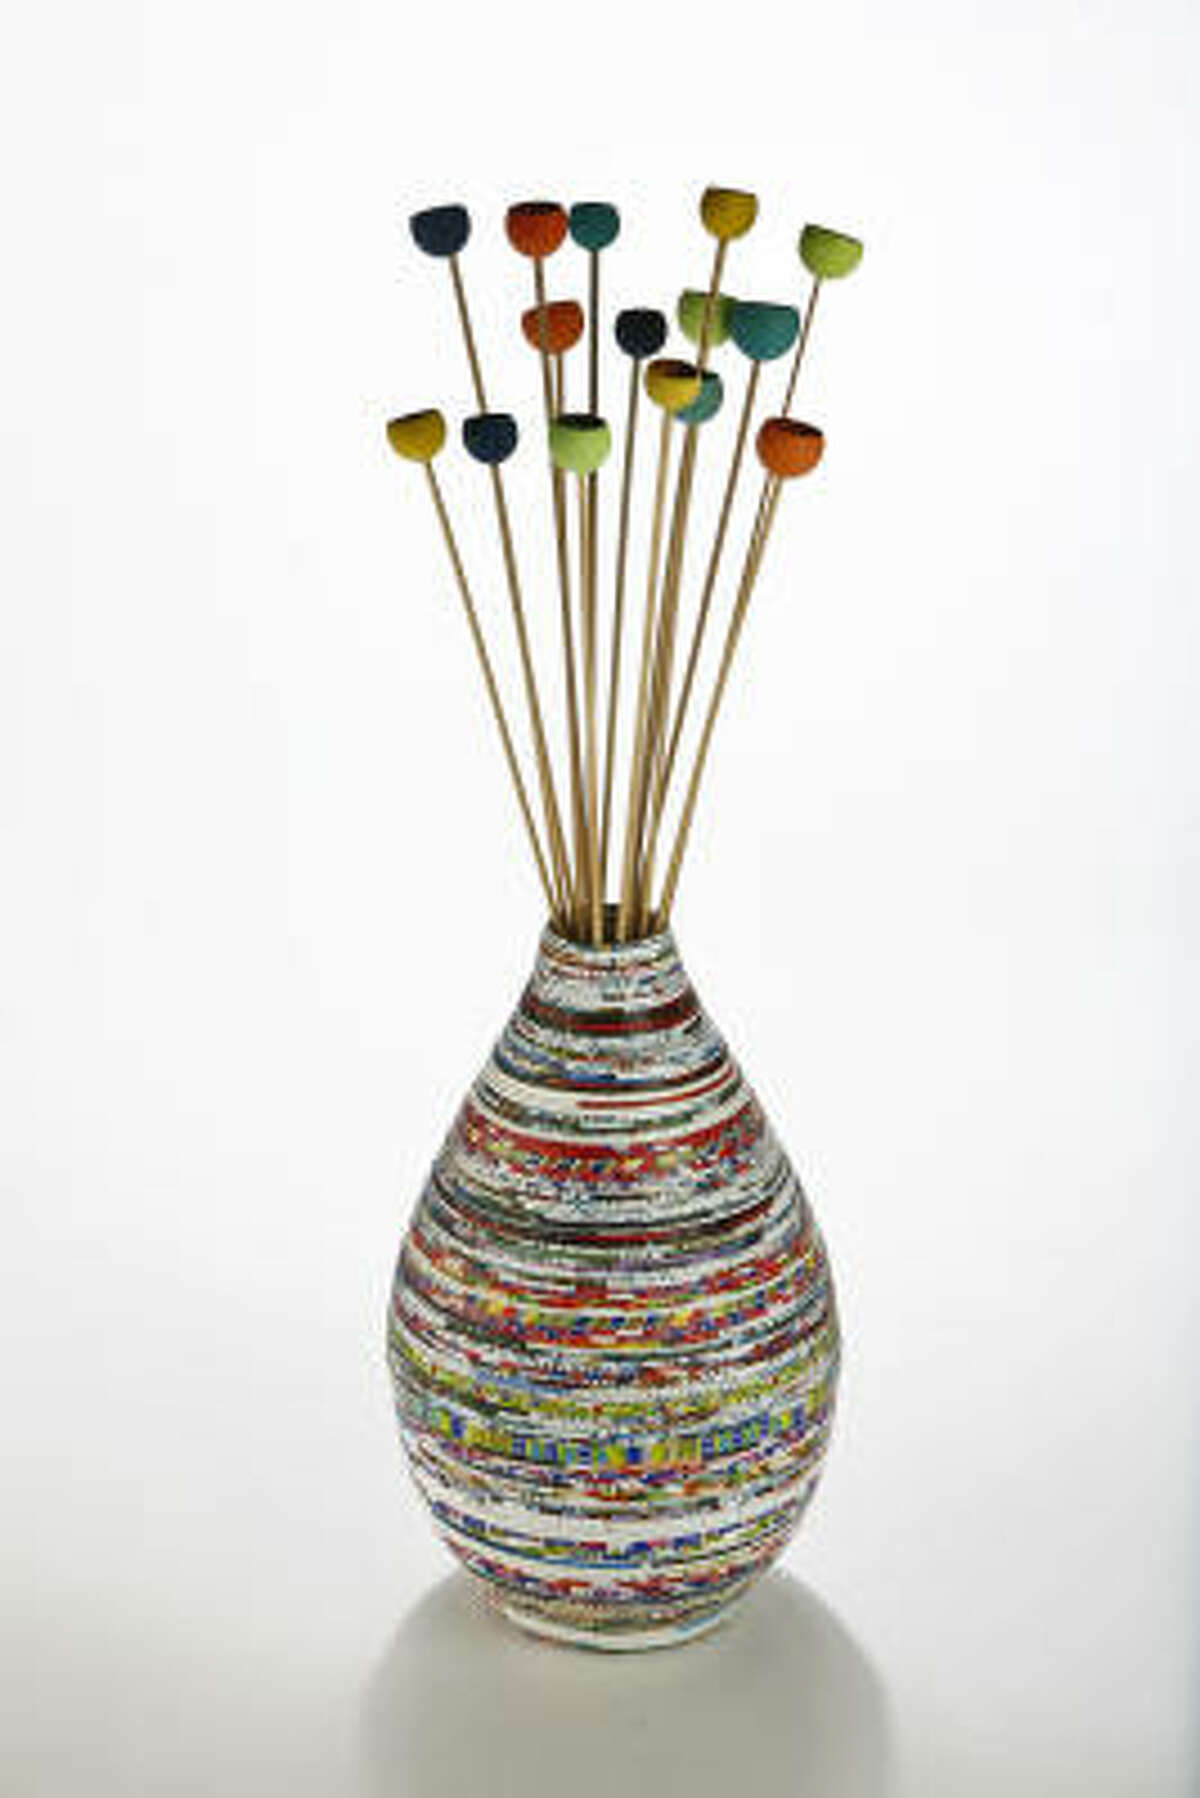 Shopping for recycled and vegan items is not always an easy task. Take a look at some things that are budget and eco friendly. Recycled paper vase, $30, and Wooden pods on sticks, $14 for a bunch, Ten Thousand Villages, 2424 Rice Blvd.